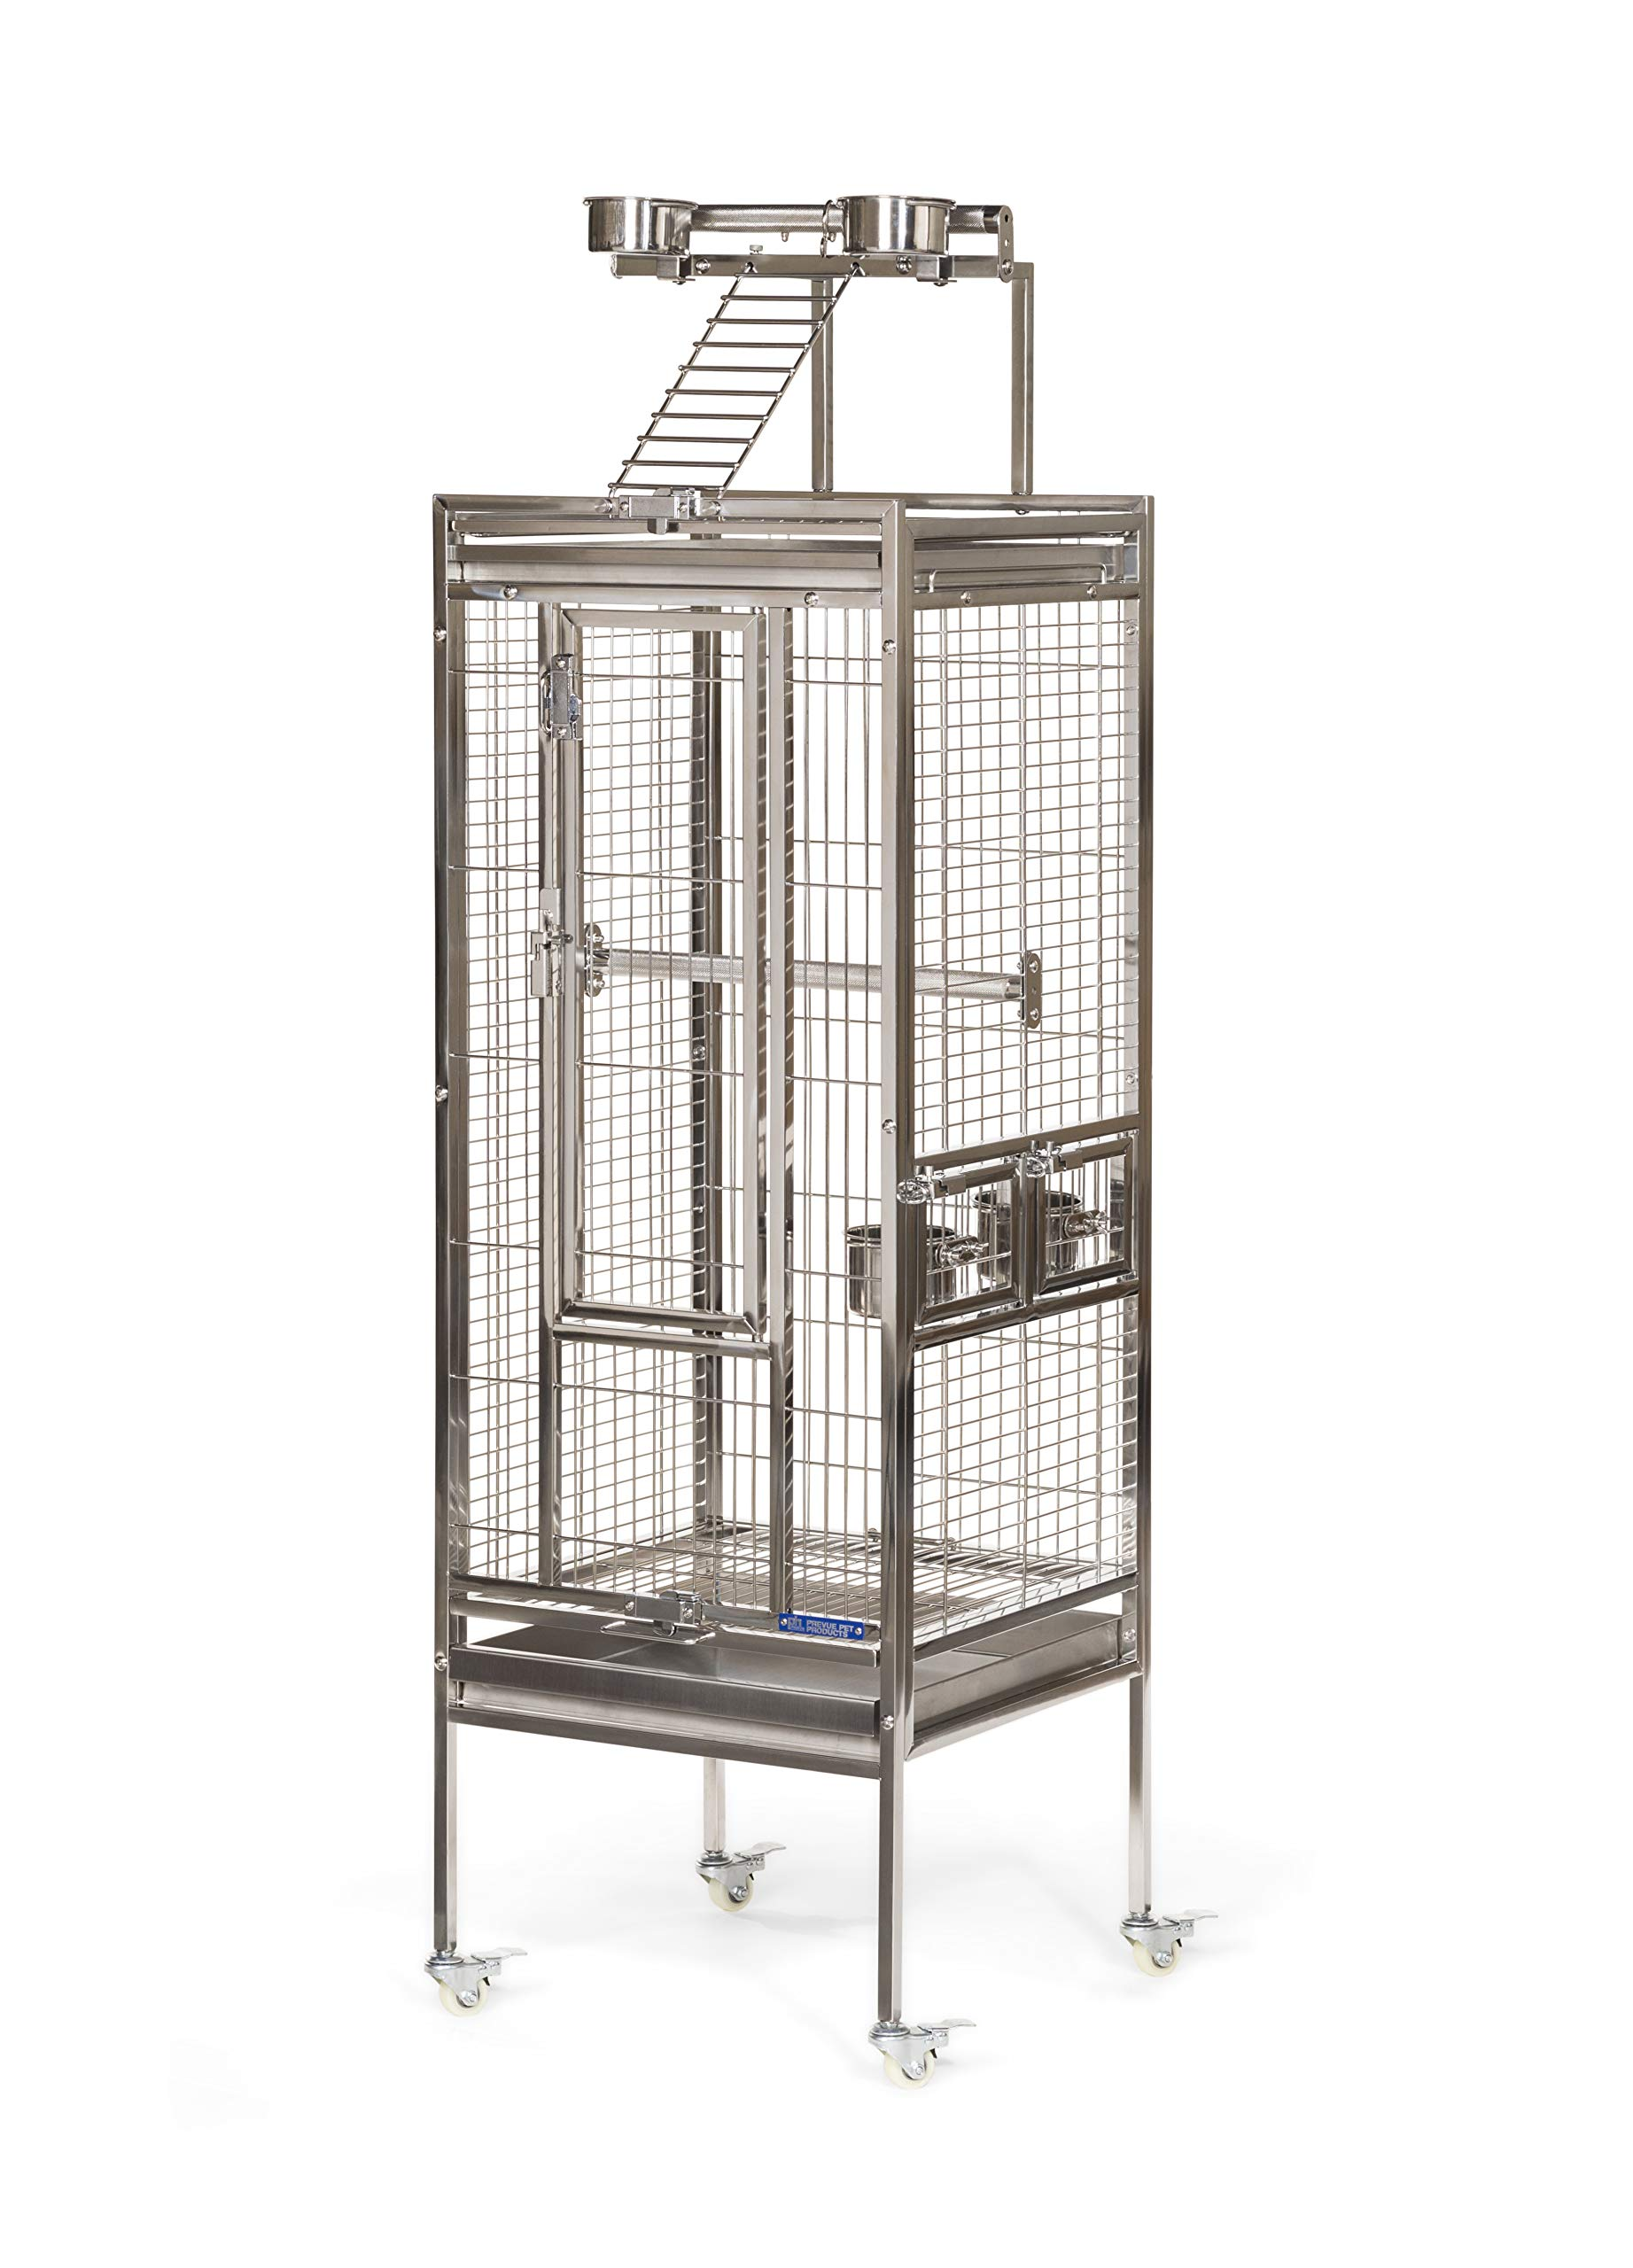 Prevue Pet Products Stainless Steel Playtop Bird Cage, Small by Prevue Pet Products